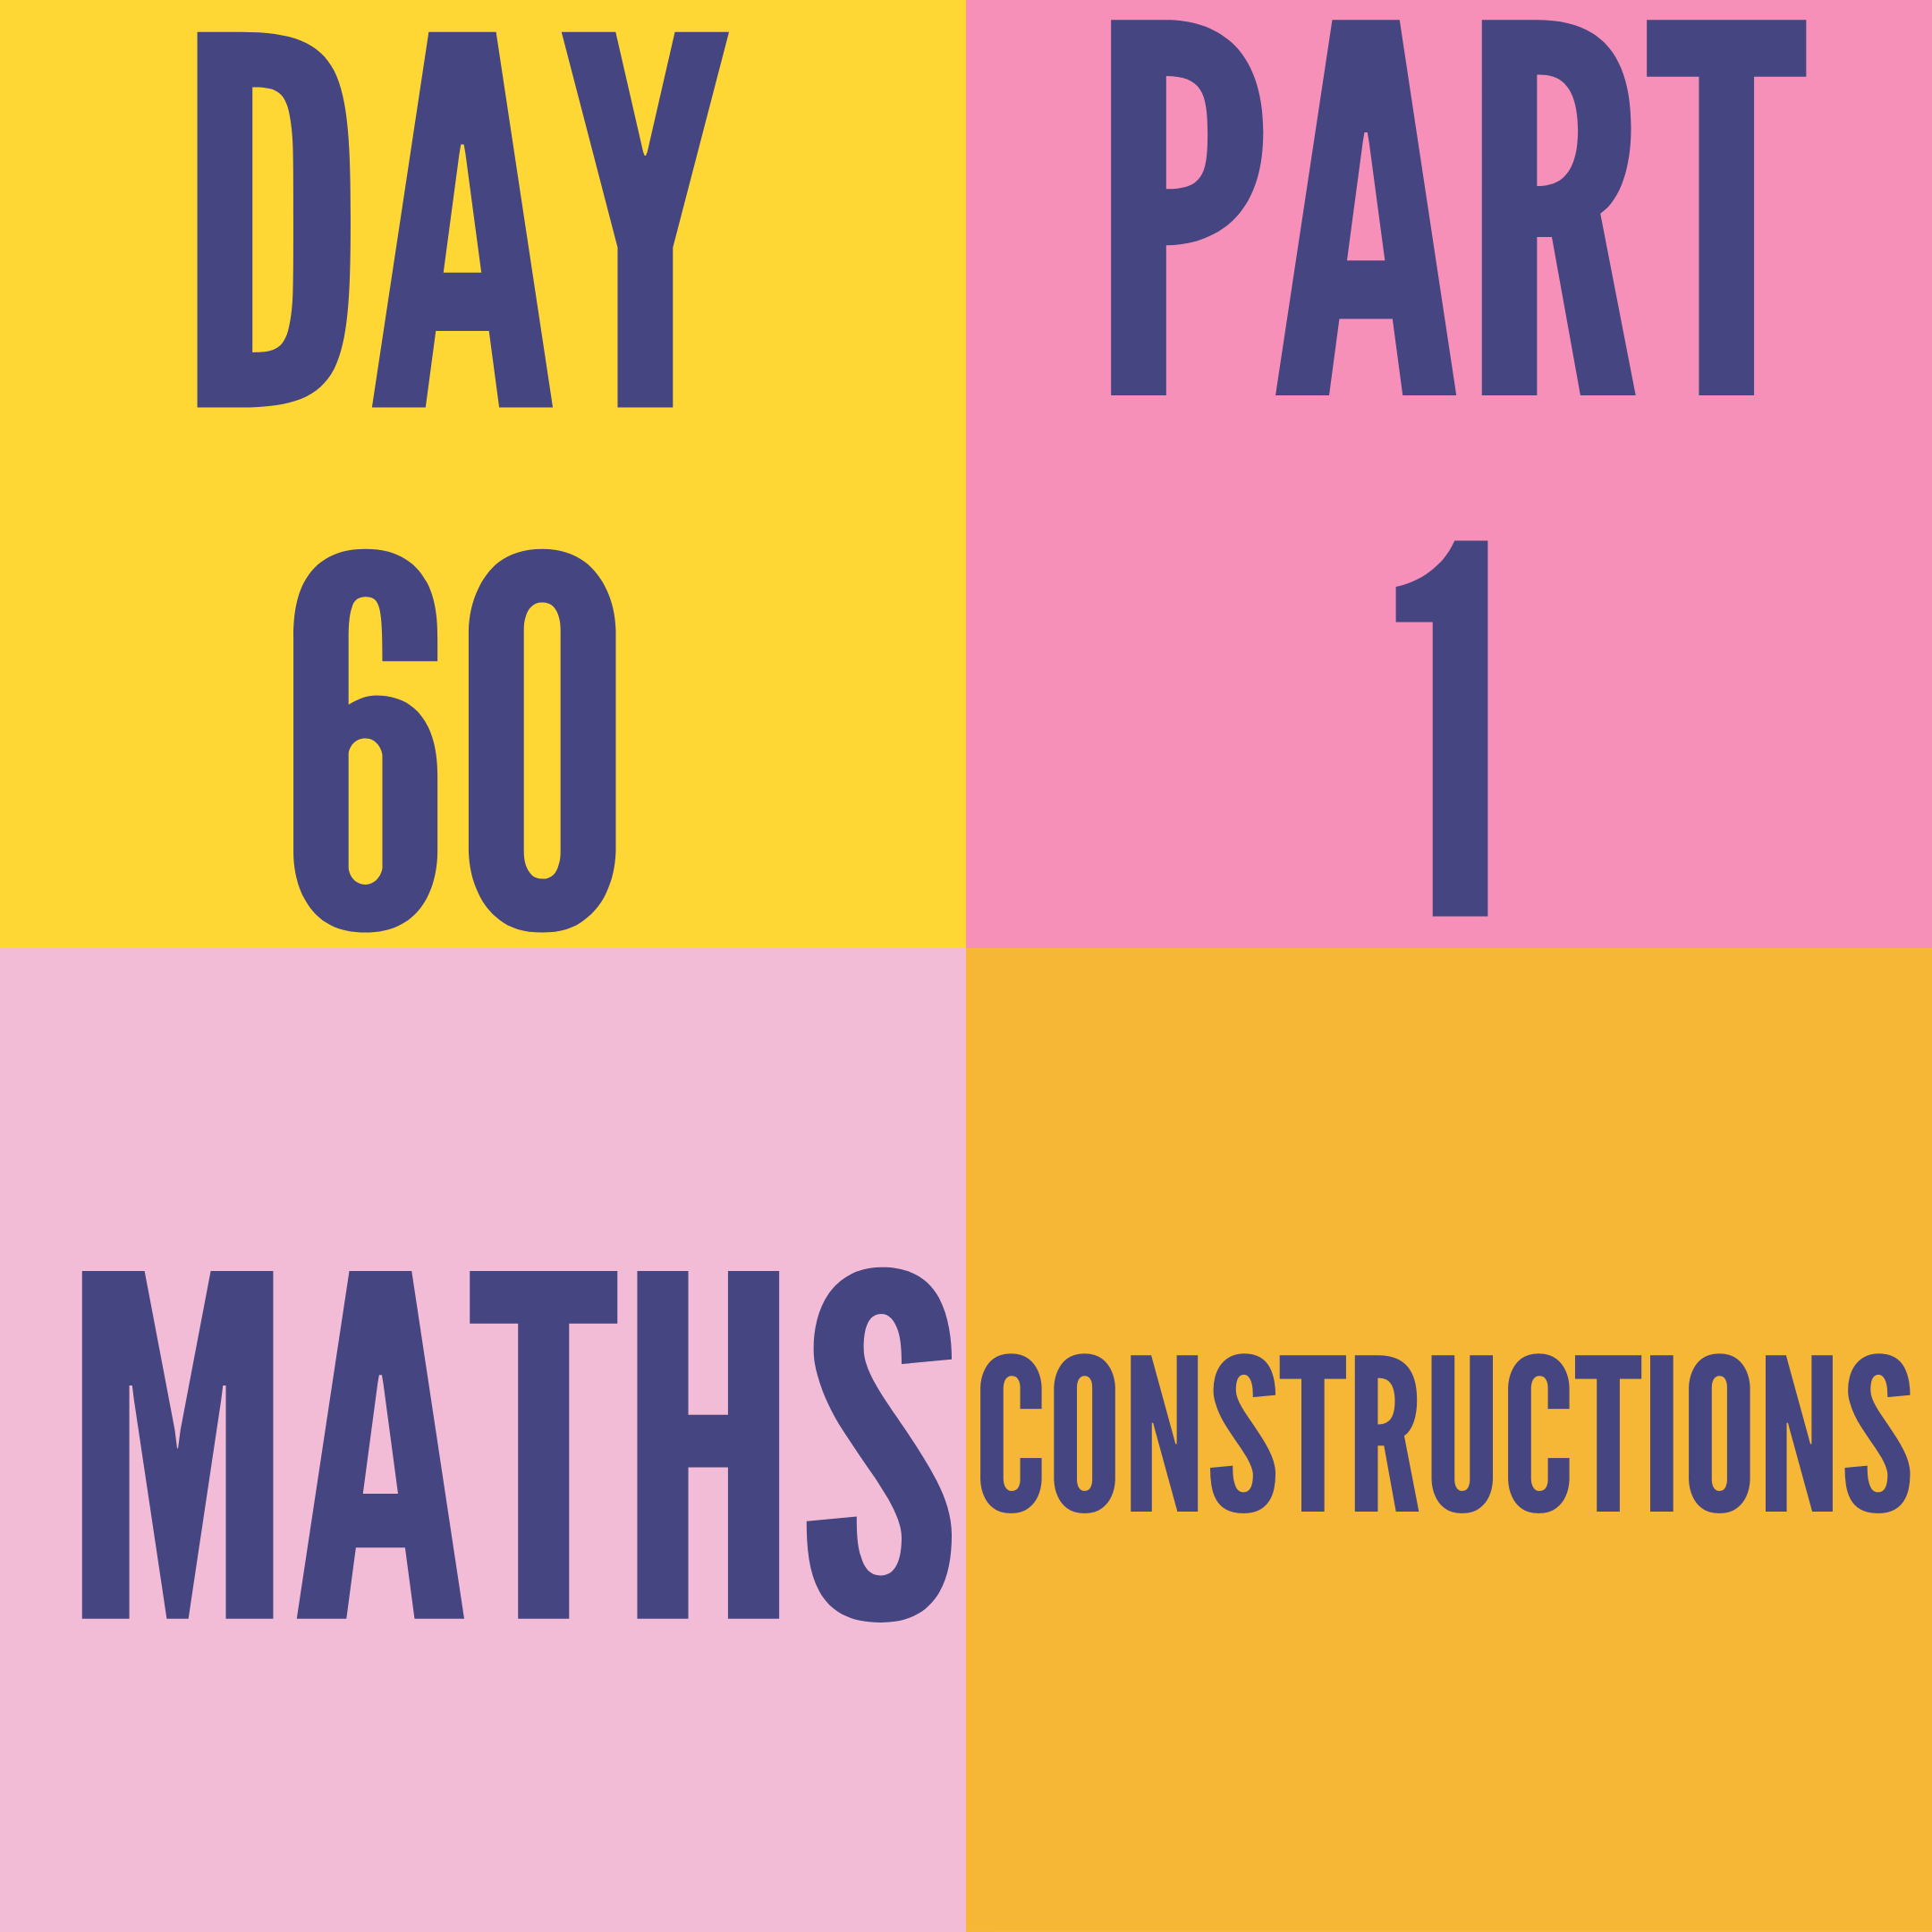 DAY-60 PART-1 CONSTRUCTIONS